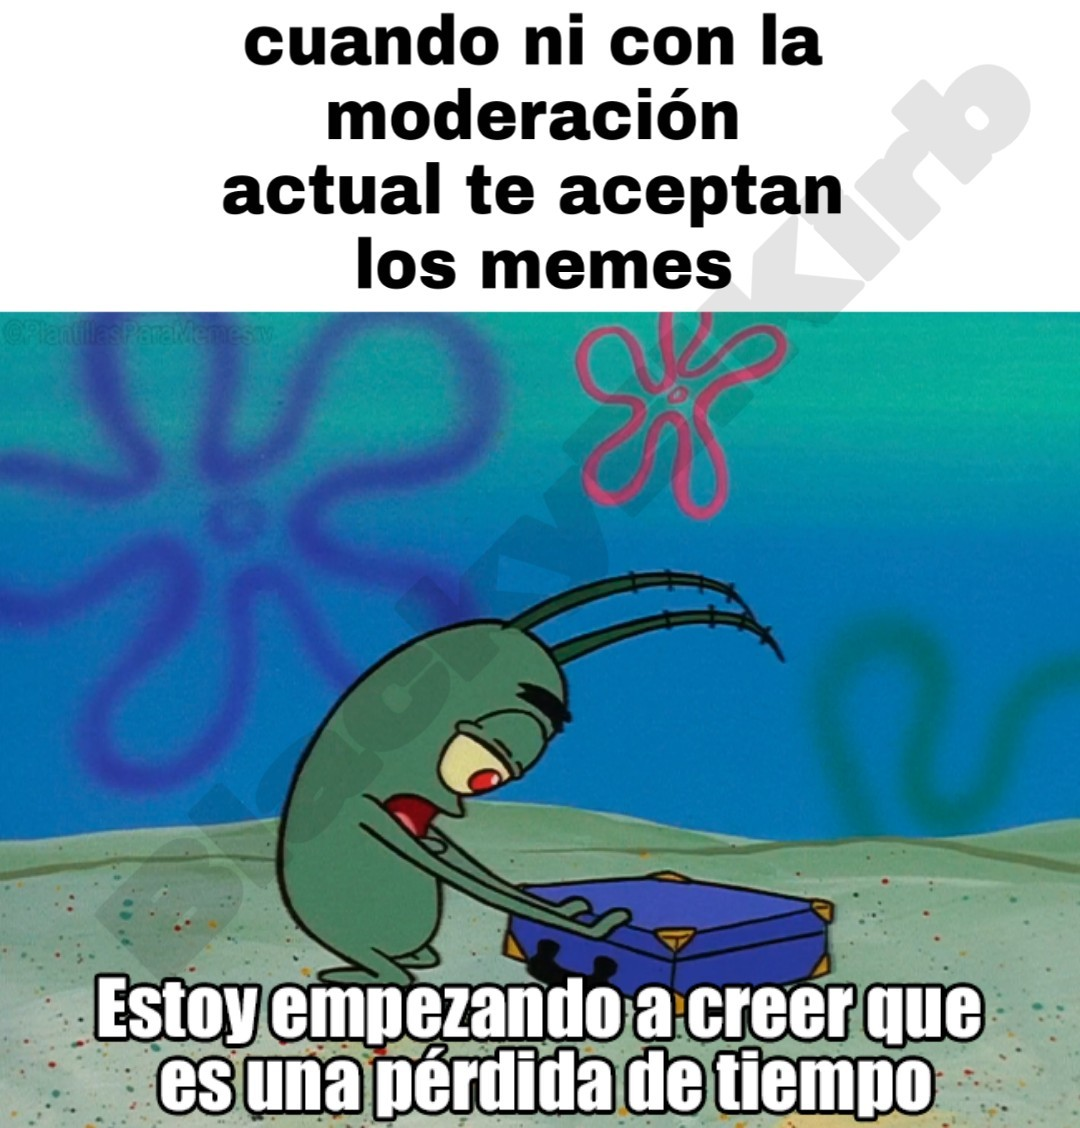 We will make moderación great again - meme